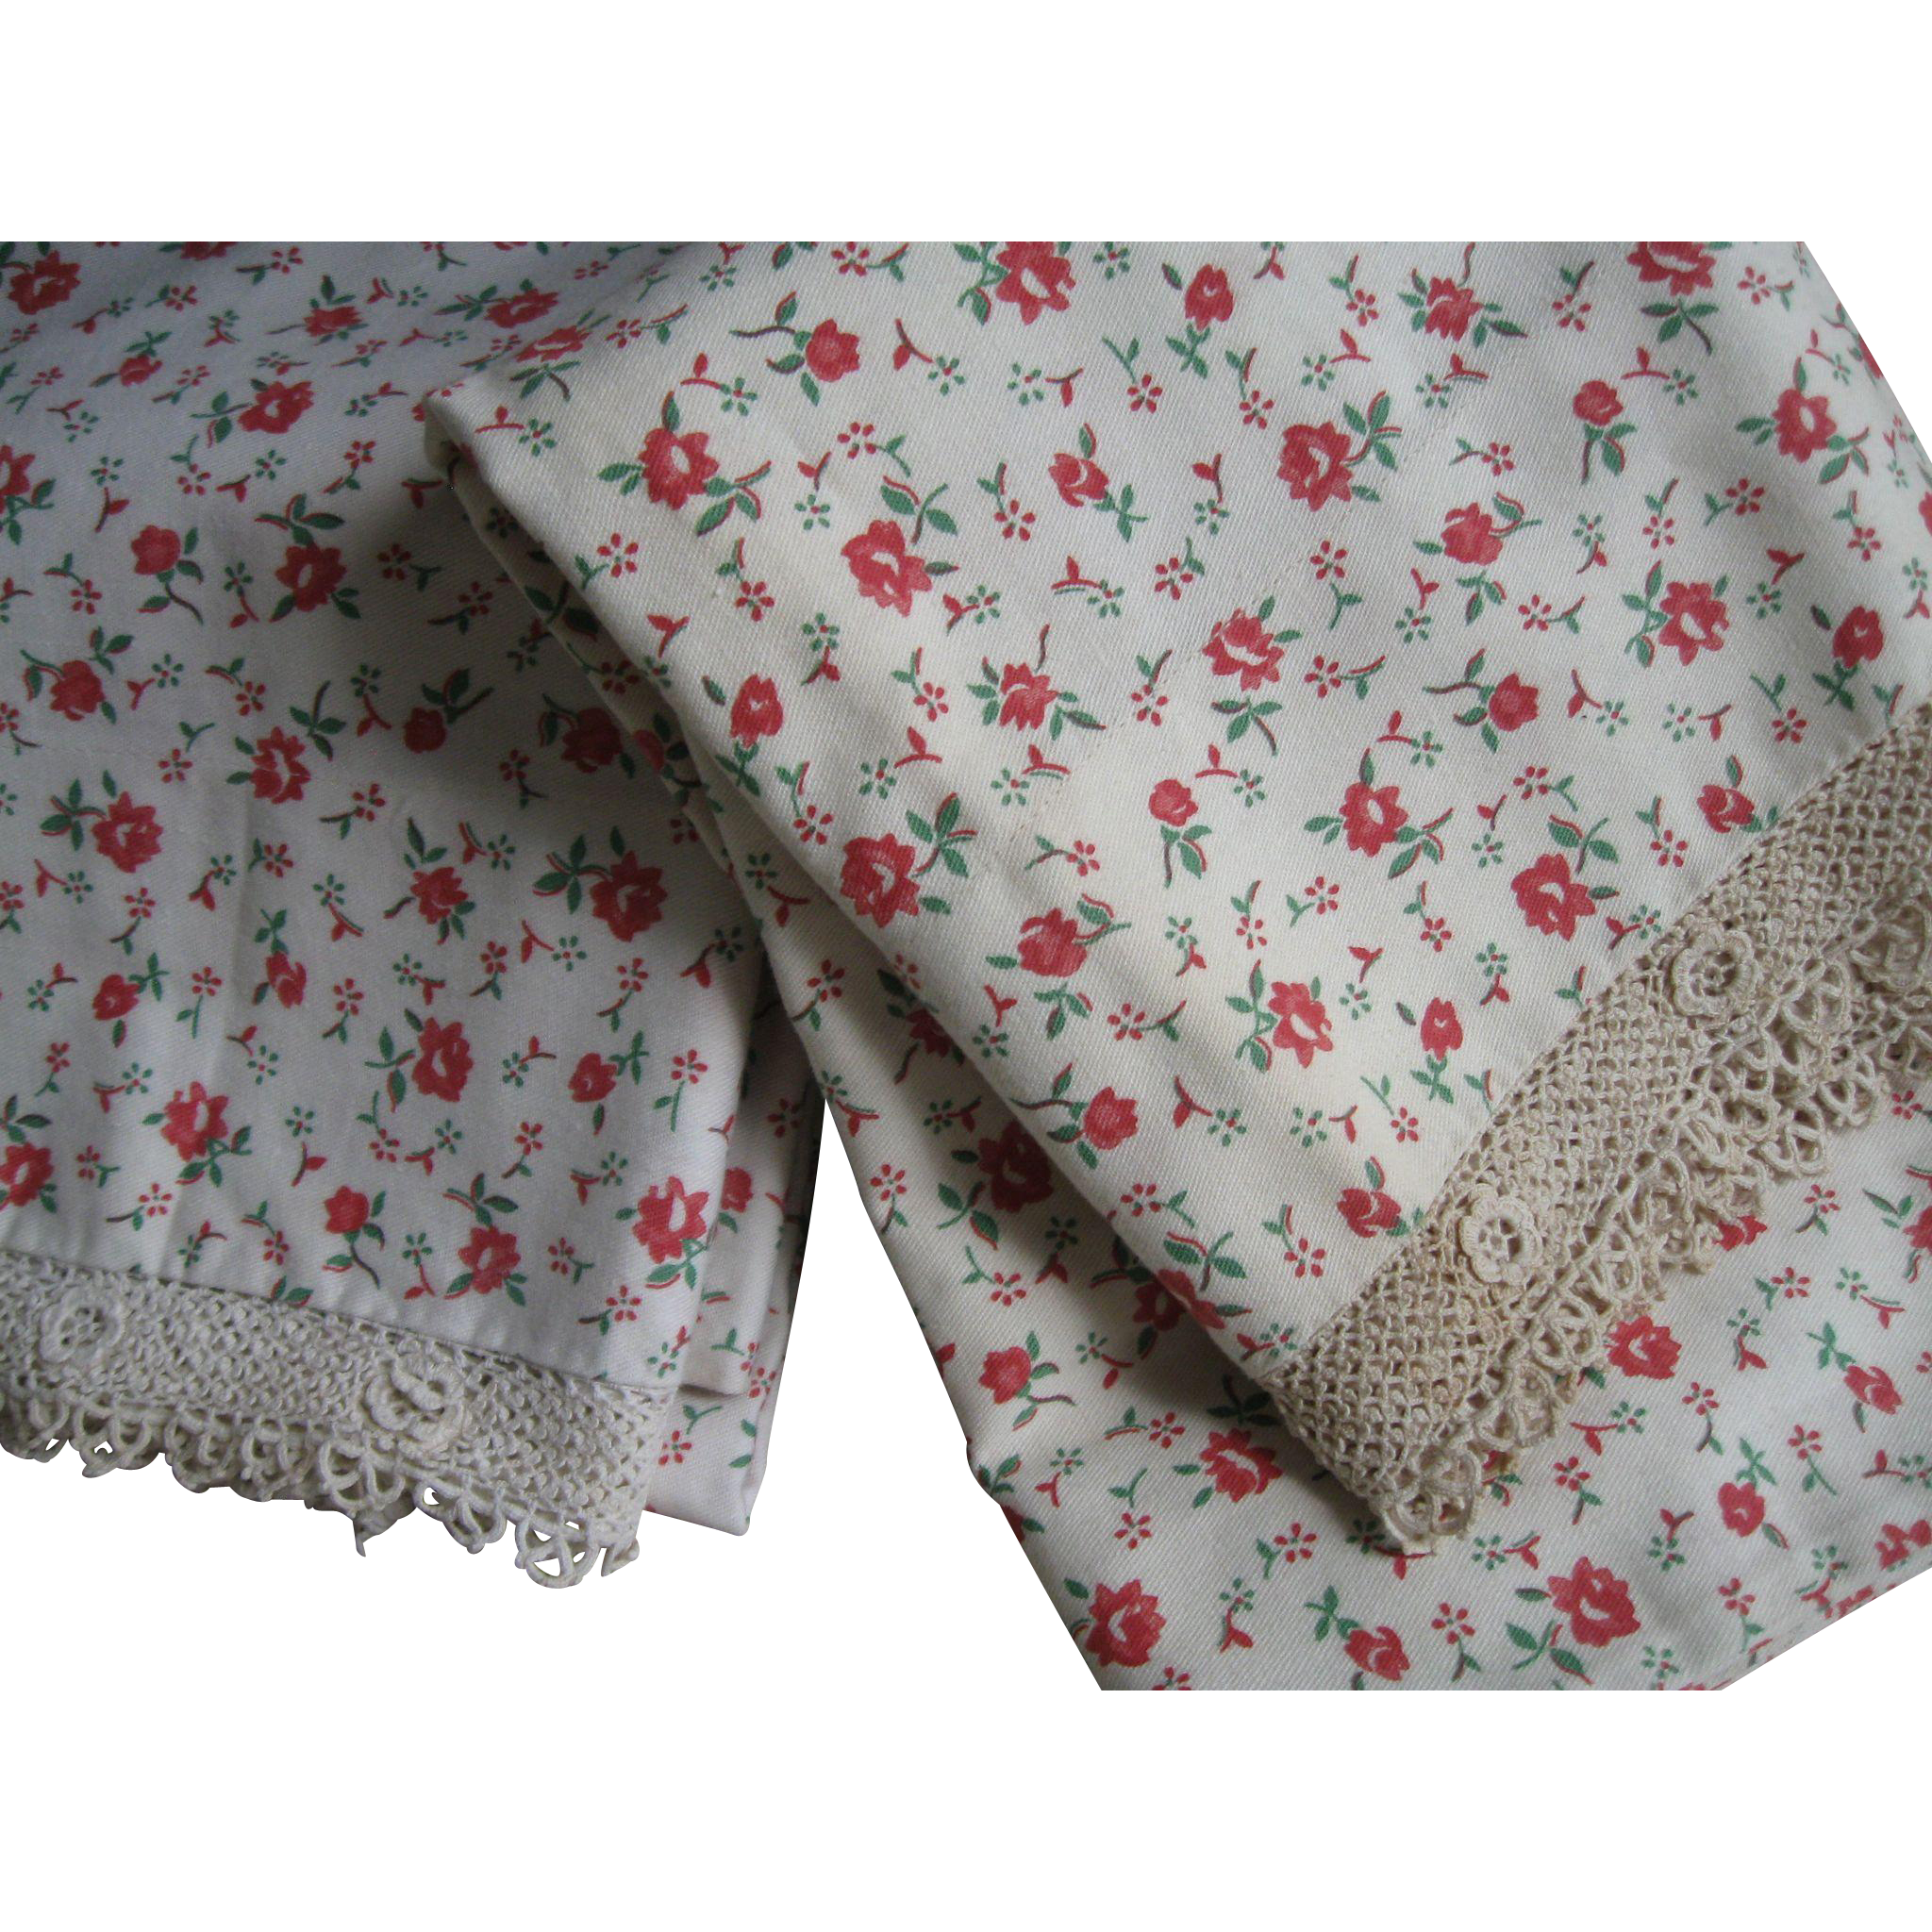 Vintage c 30's Floral Pillowcases, Irish Crochet Lace, Pair